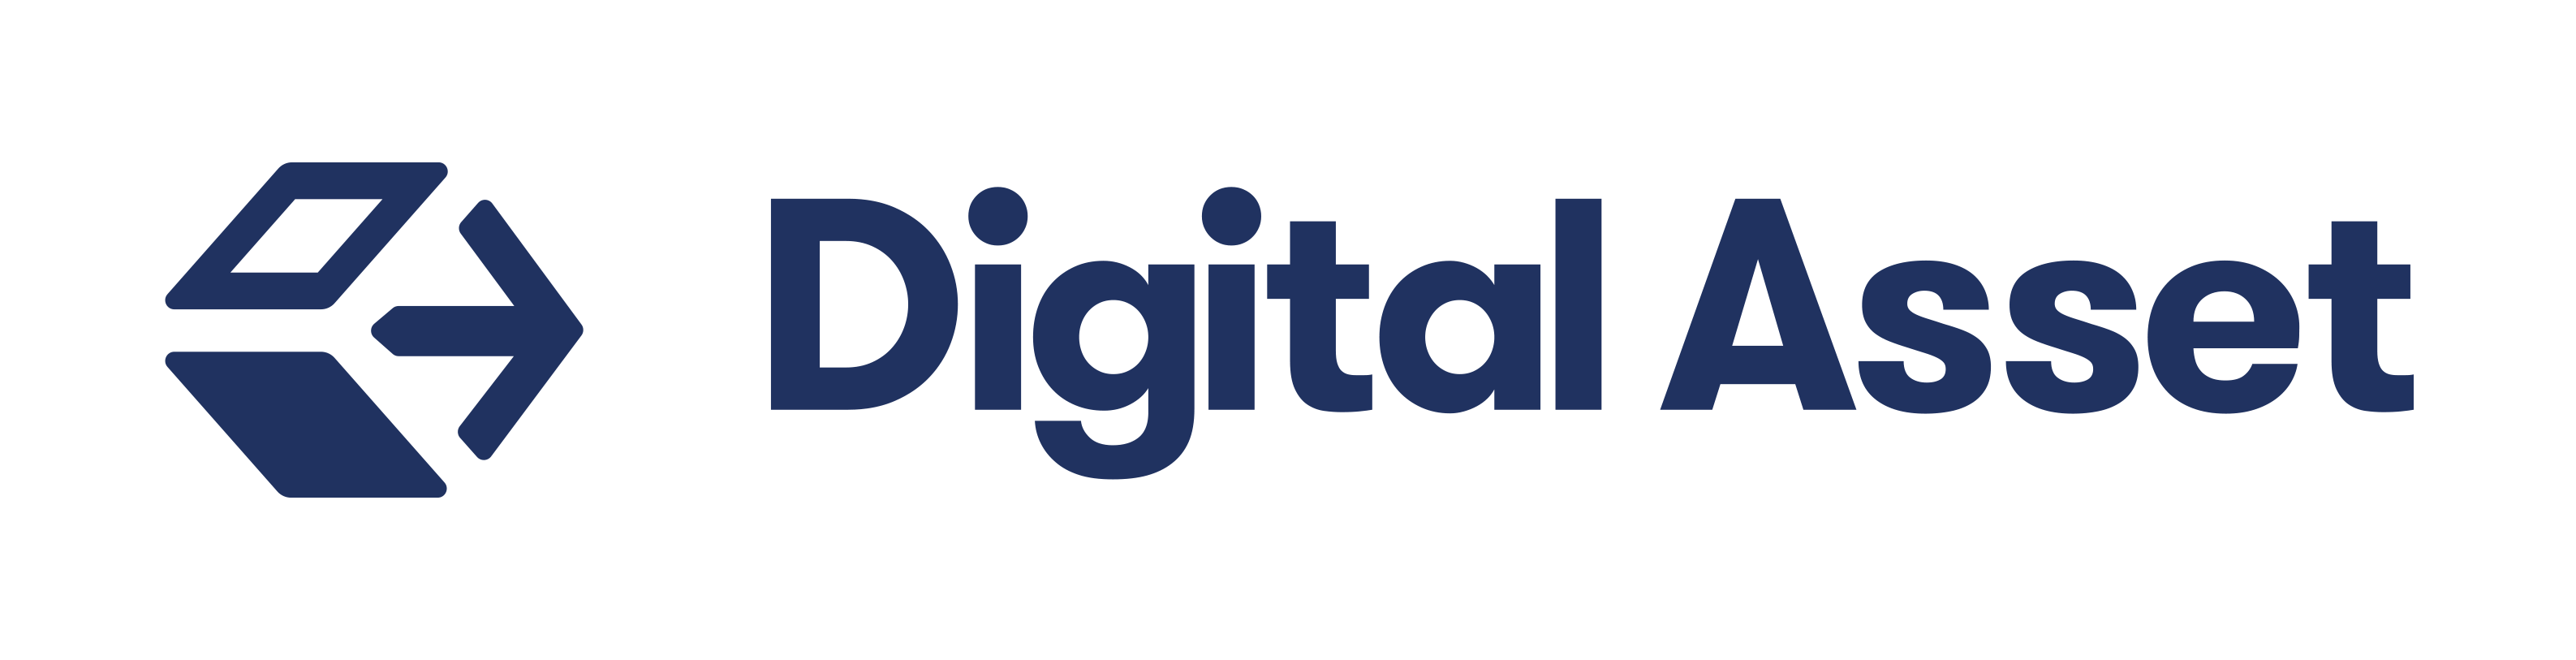 Digital Asset